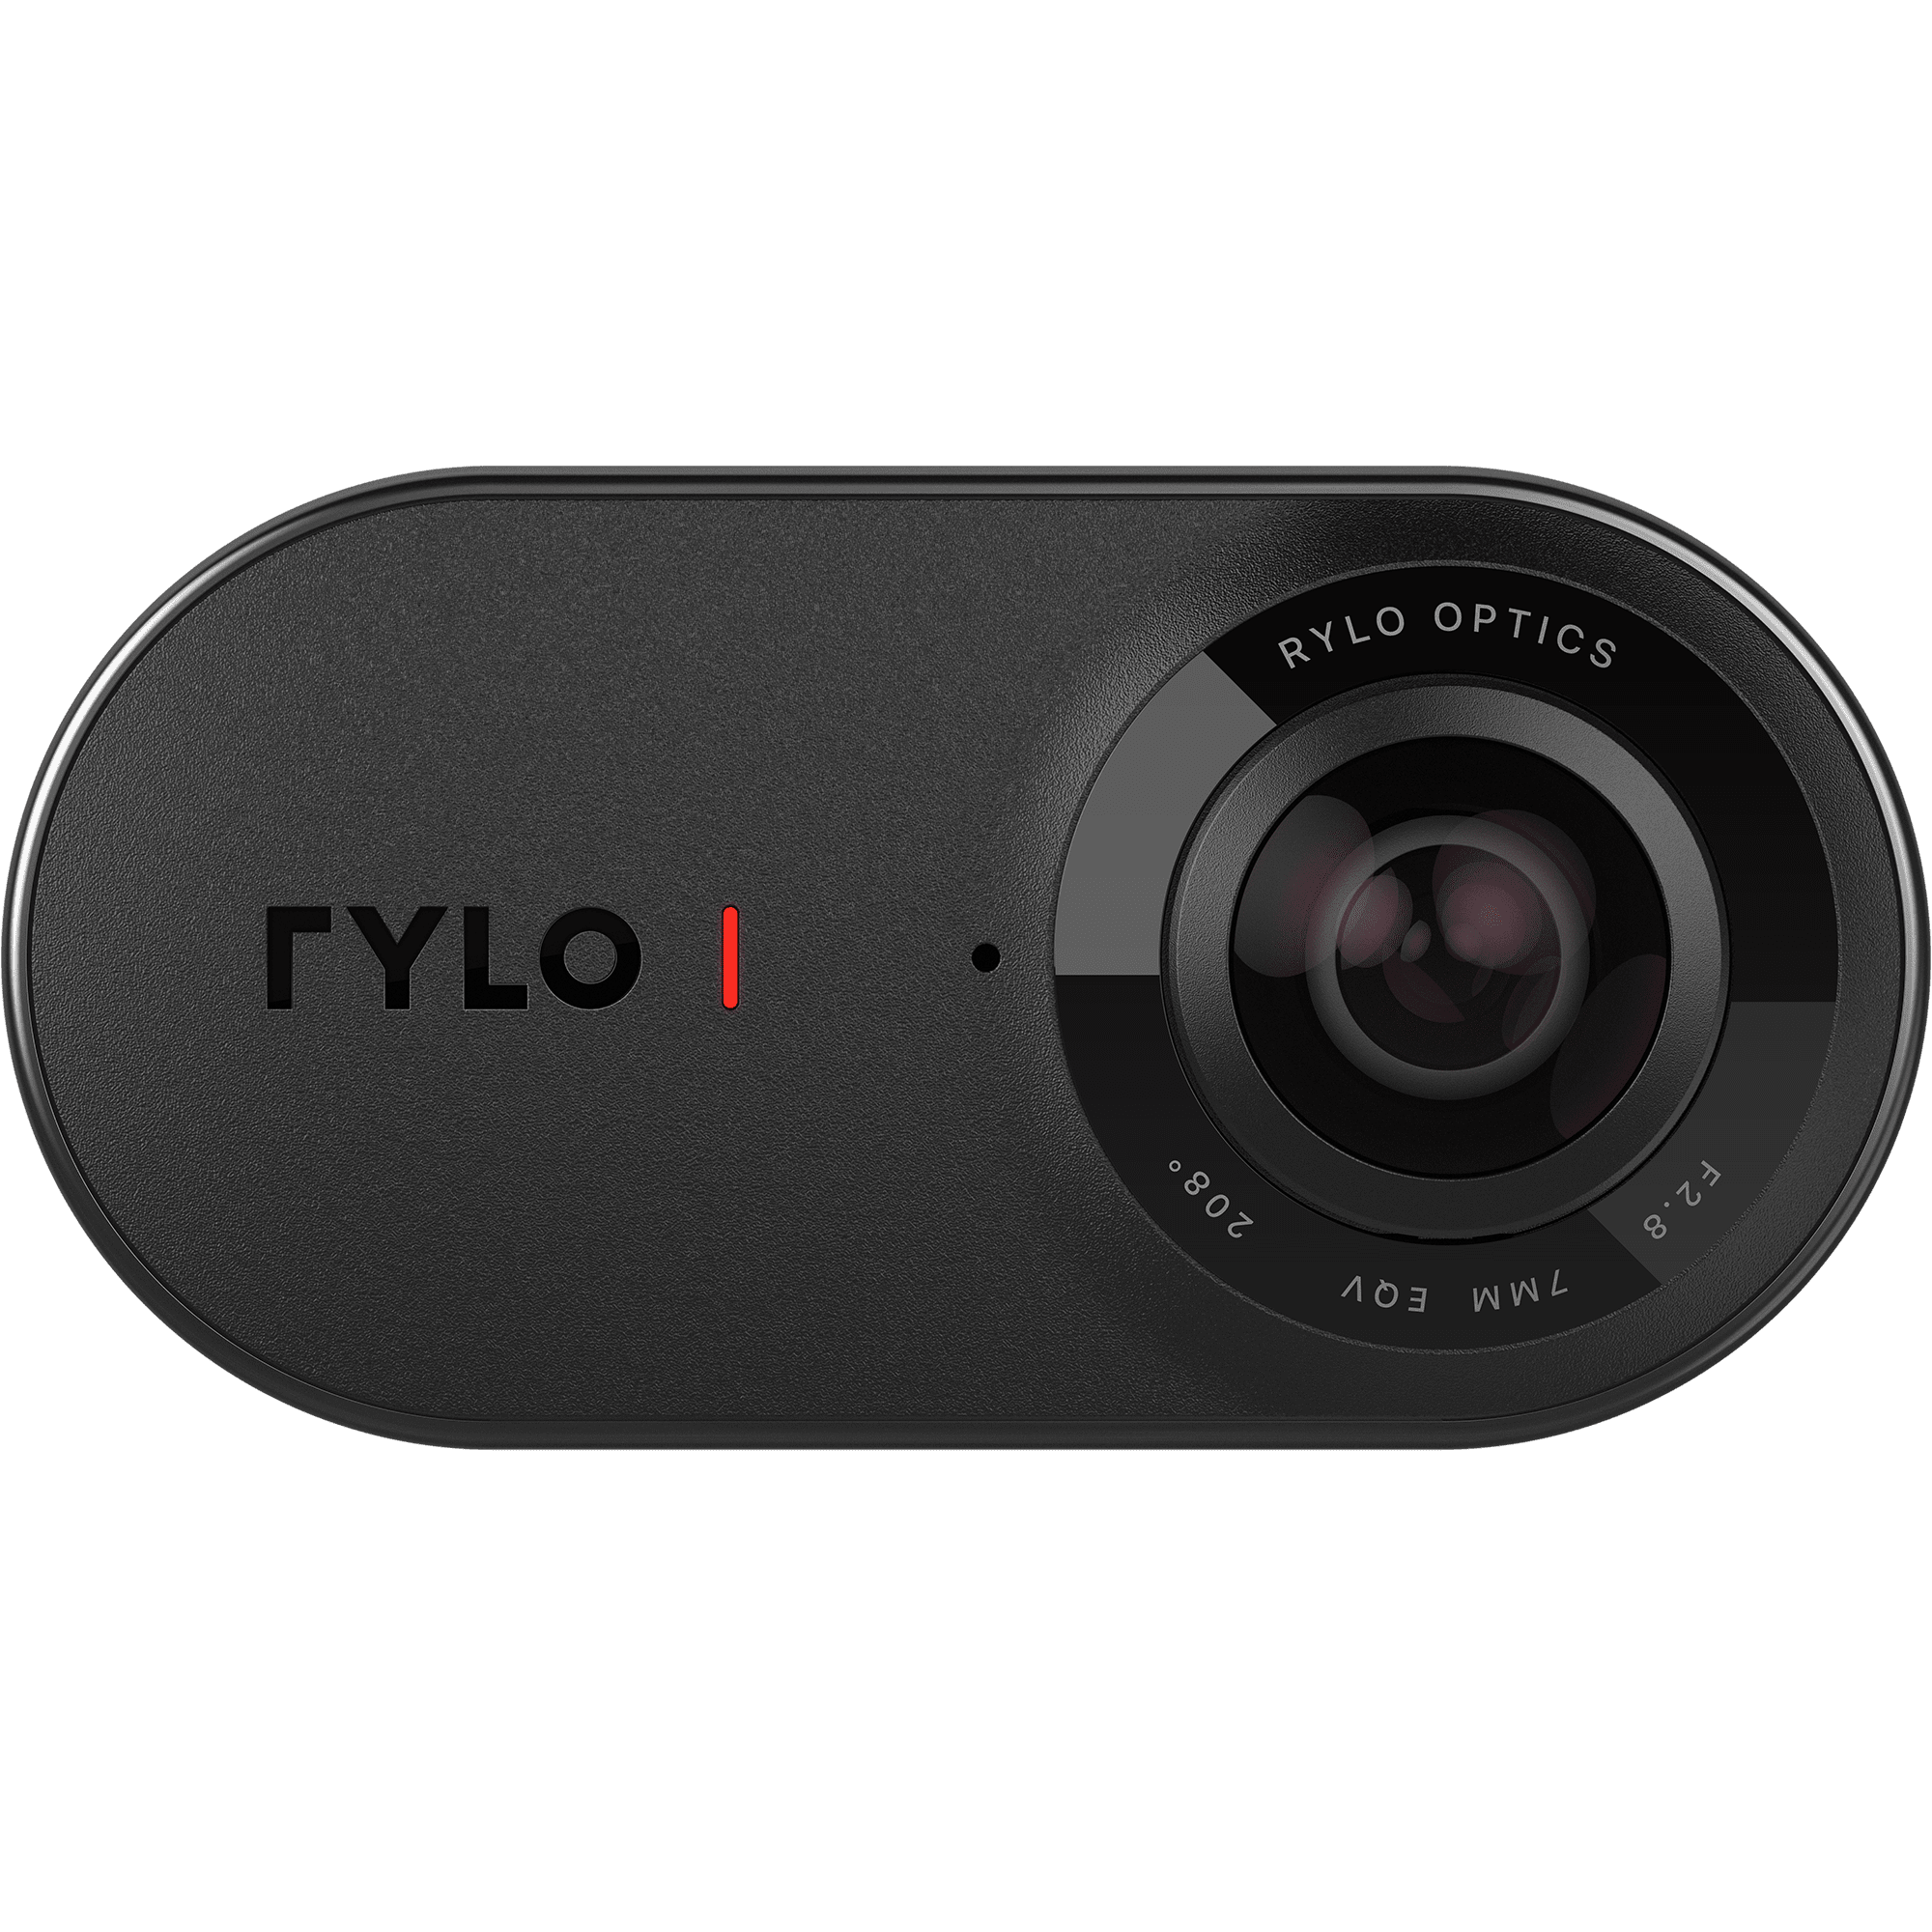 Rylo announces update to increase 360-degree Camera's 4K output to 5.8K